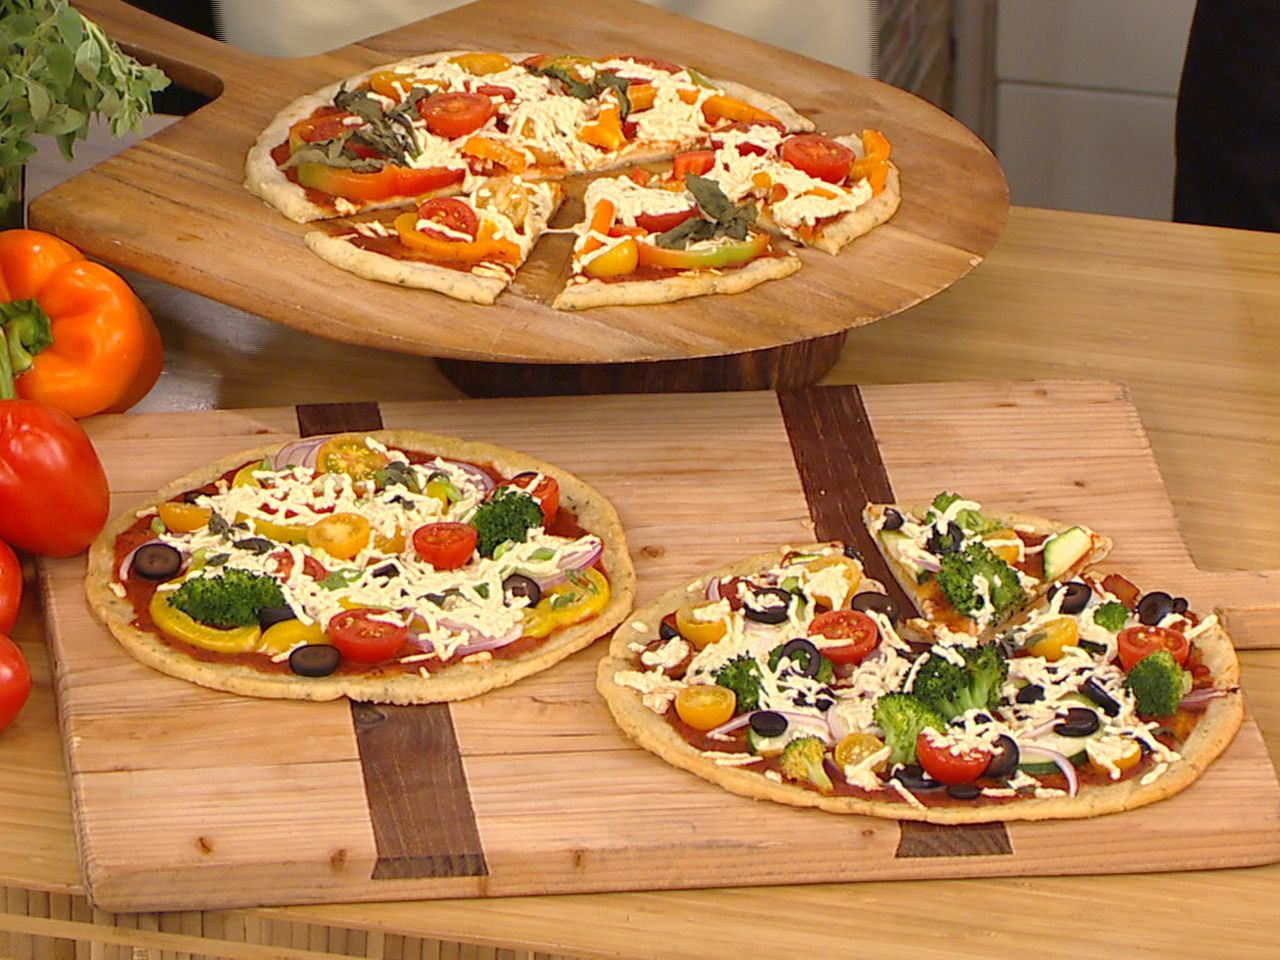 Make allergy free pizza your kids will love kids meal ideas make allergy free pizza your kids will love forumfinder Gallery